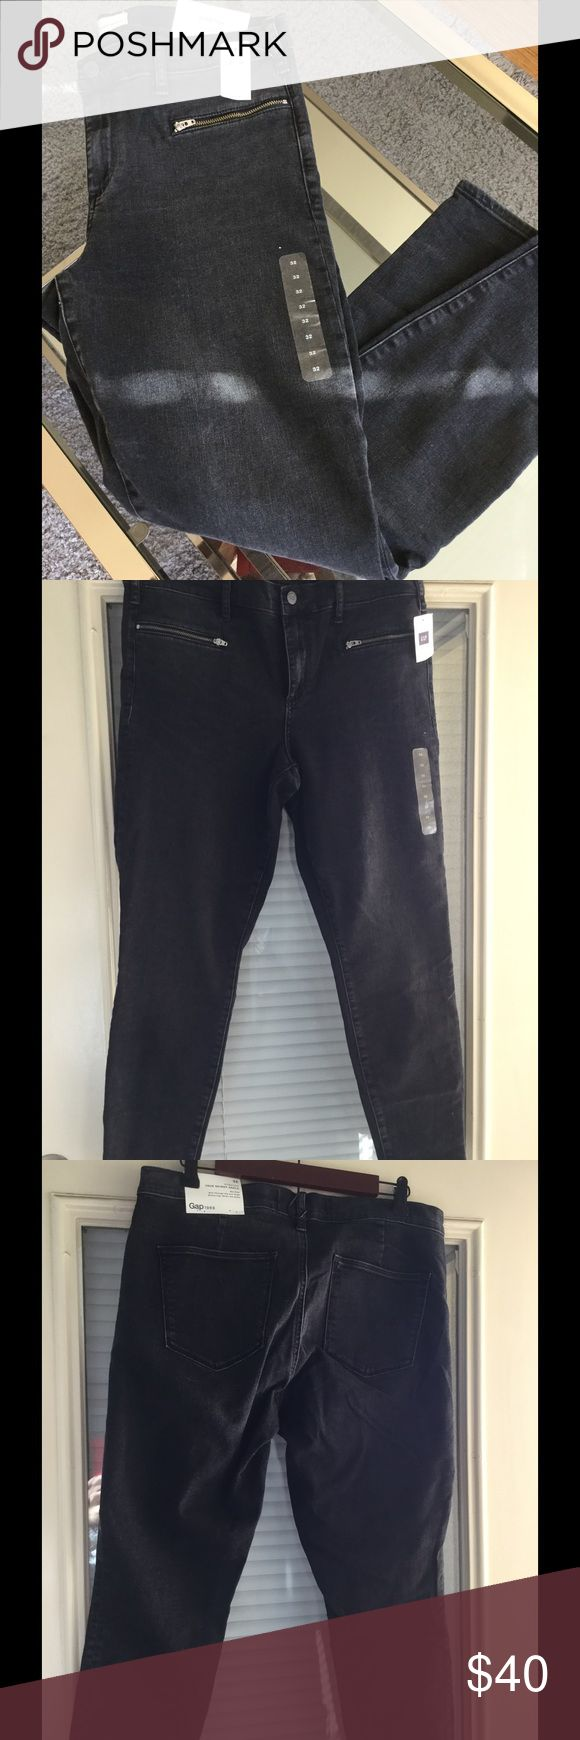 GAP 1969 Stretch True Skinny ankle Jeans Black True skinny ankle jeans. They are mid rise, slim through hip and thigh, skinny leg. skims the ankle. It has 2 pockets with zippers in the front and 2 pockets at the back. A medium stretch fabric designed to define your shape. GAP Jeans Ankle & Cropped